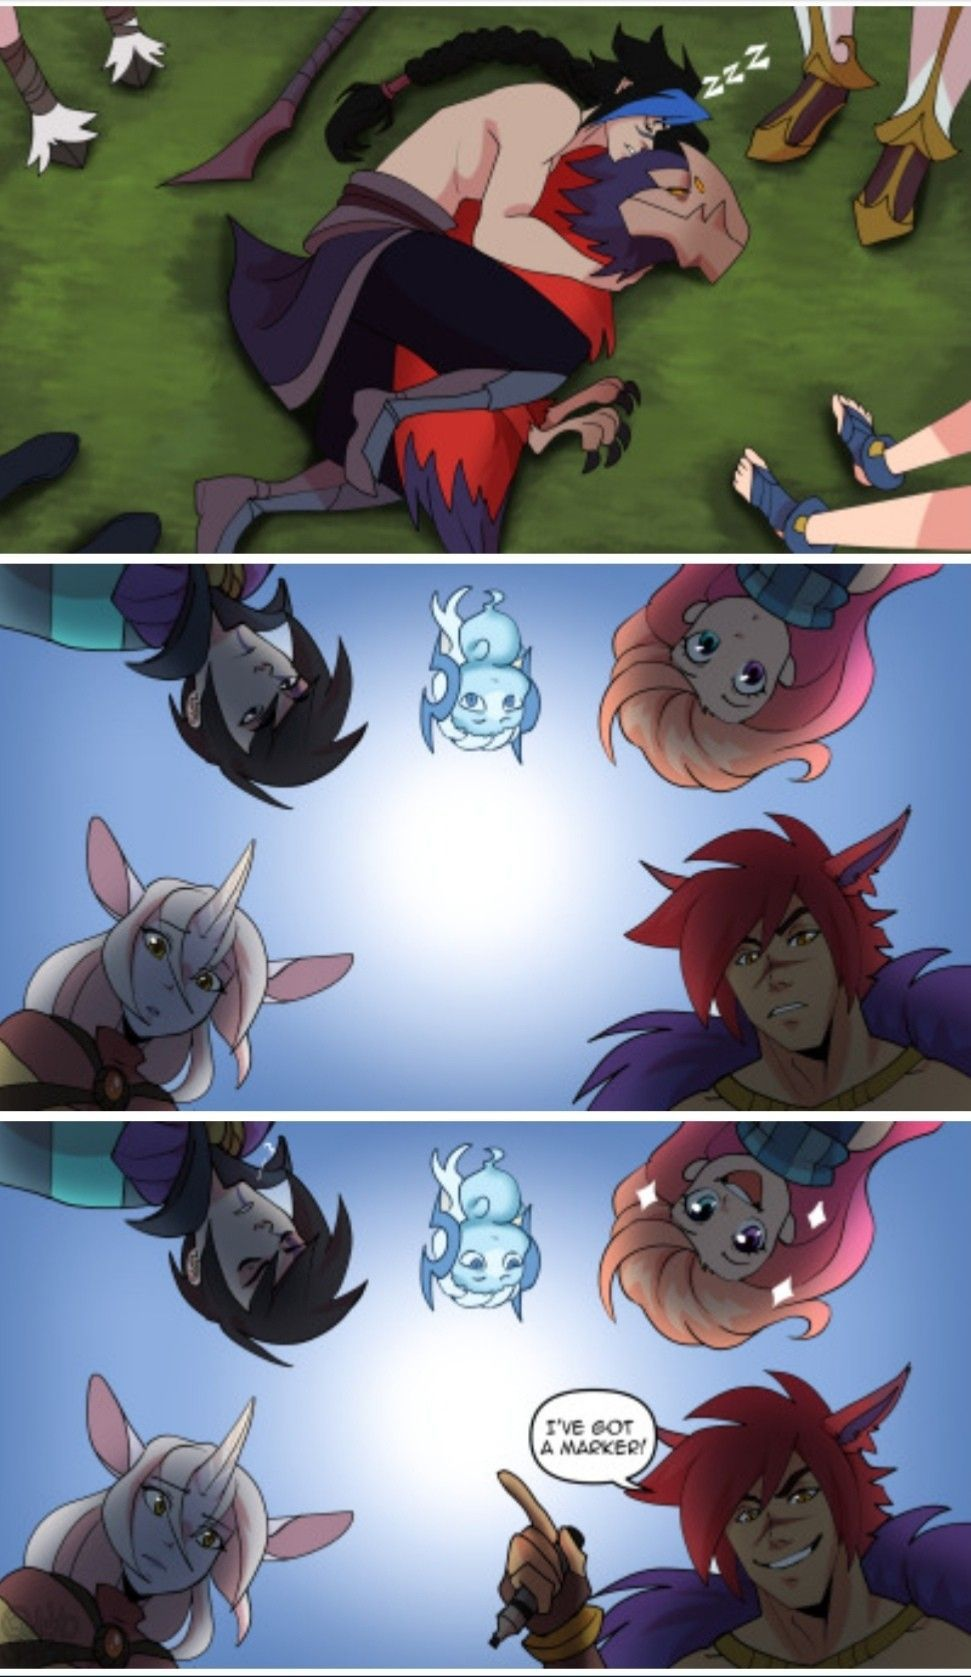 League Of Legends League Of Legends League Of Legends Comic Lol League Of Legends League Of Legends Characters